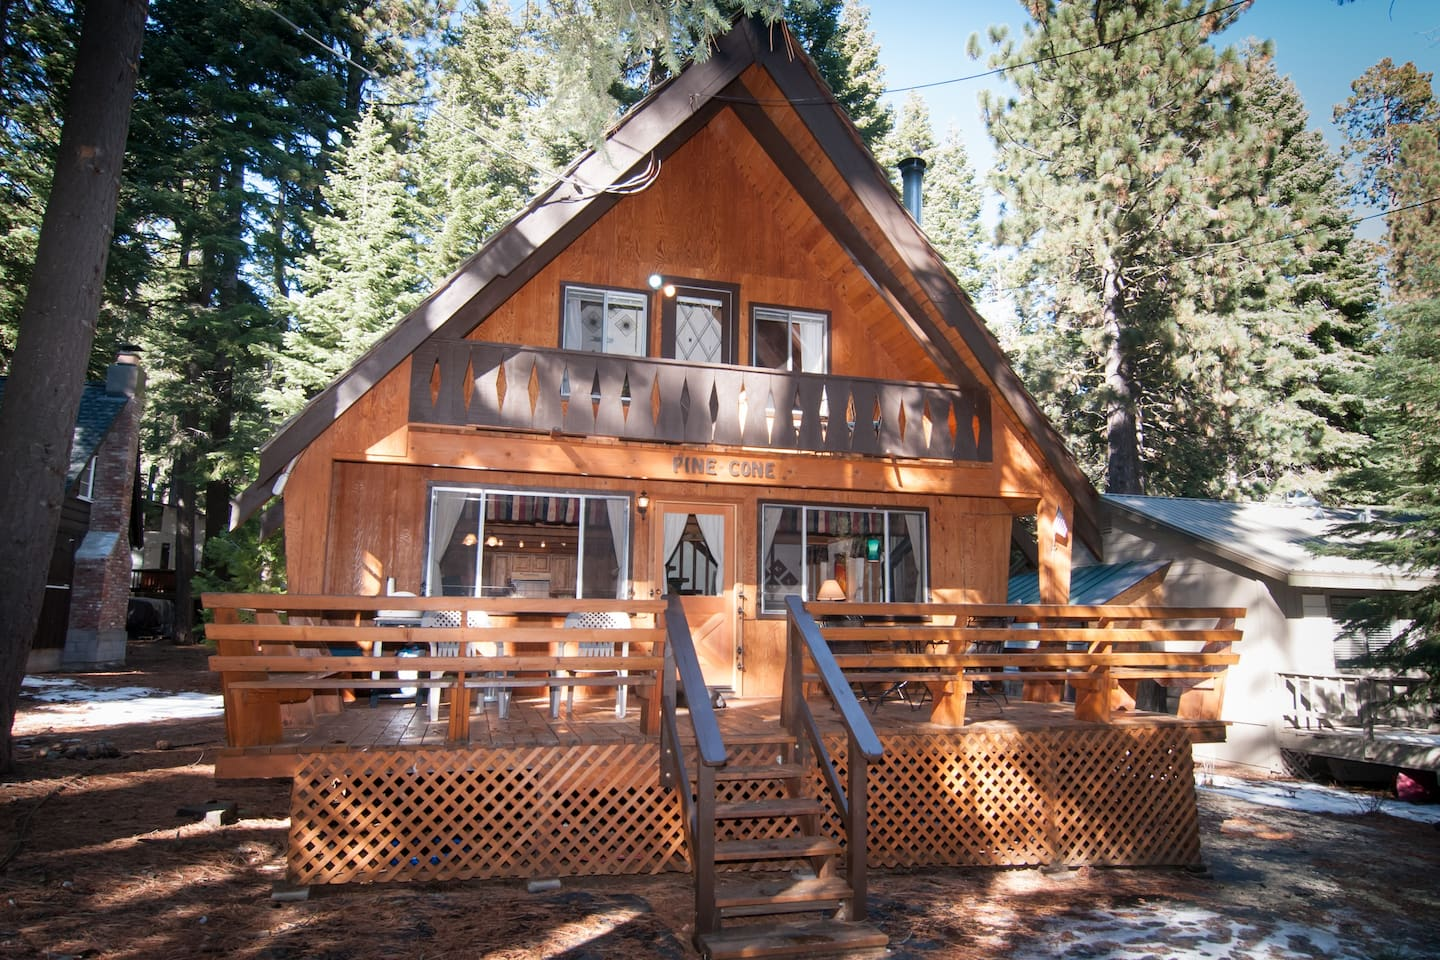 Welcome to Pine Cone!  Classic A-frame with deck and balcony. Sleeps 15.